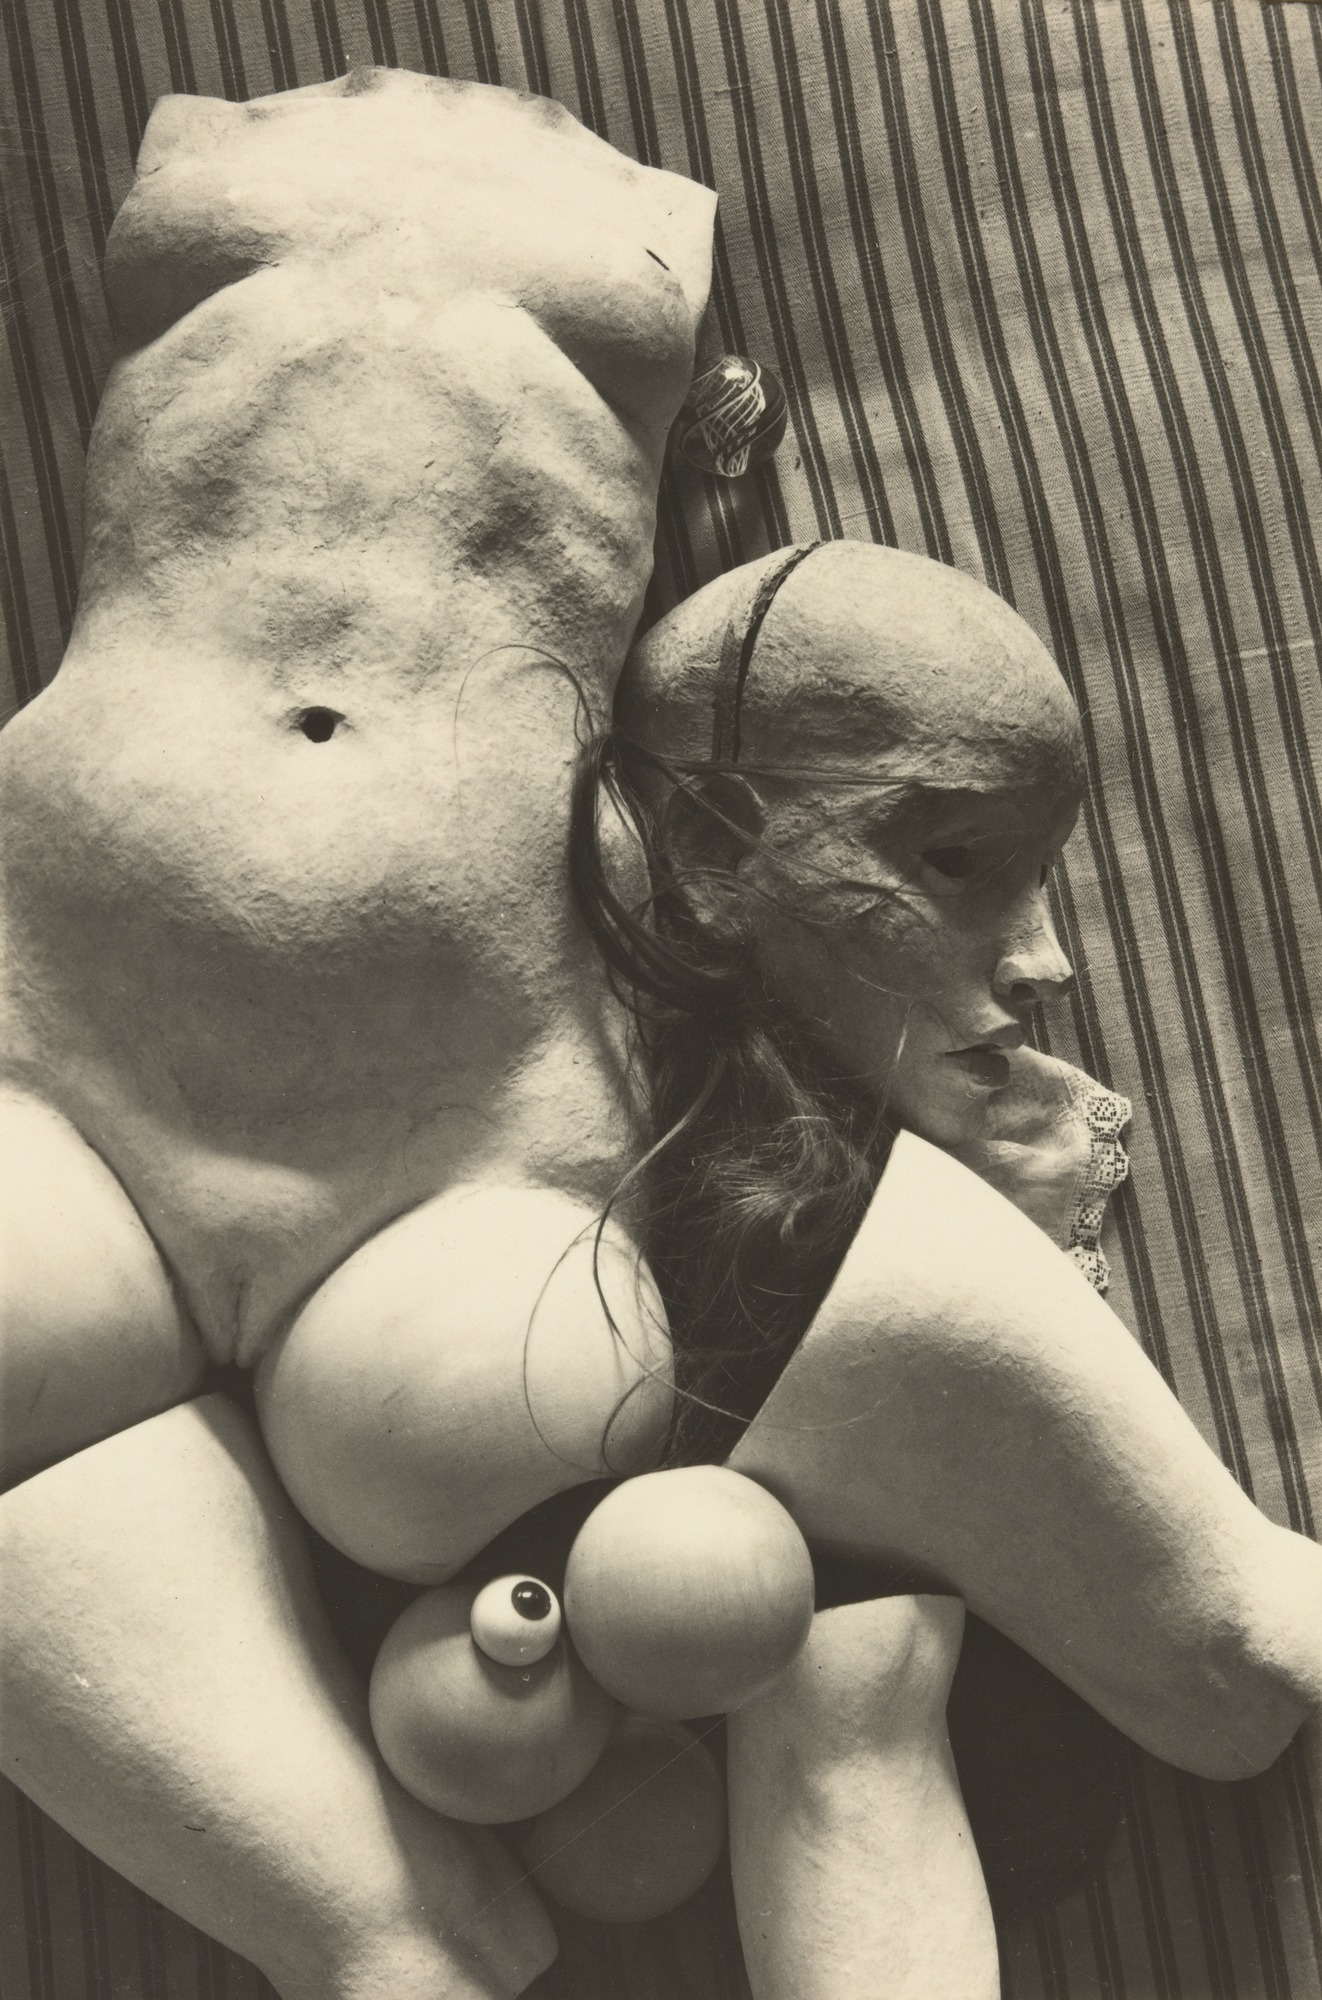 Hans Bellmer, Untitled from The Doll, 1936, gelatin silver print, 4 5/8 x 3 1/16 inches (MoMA)